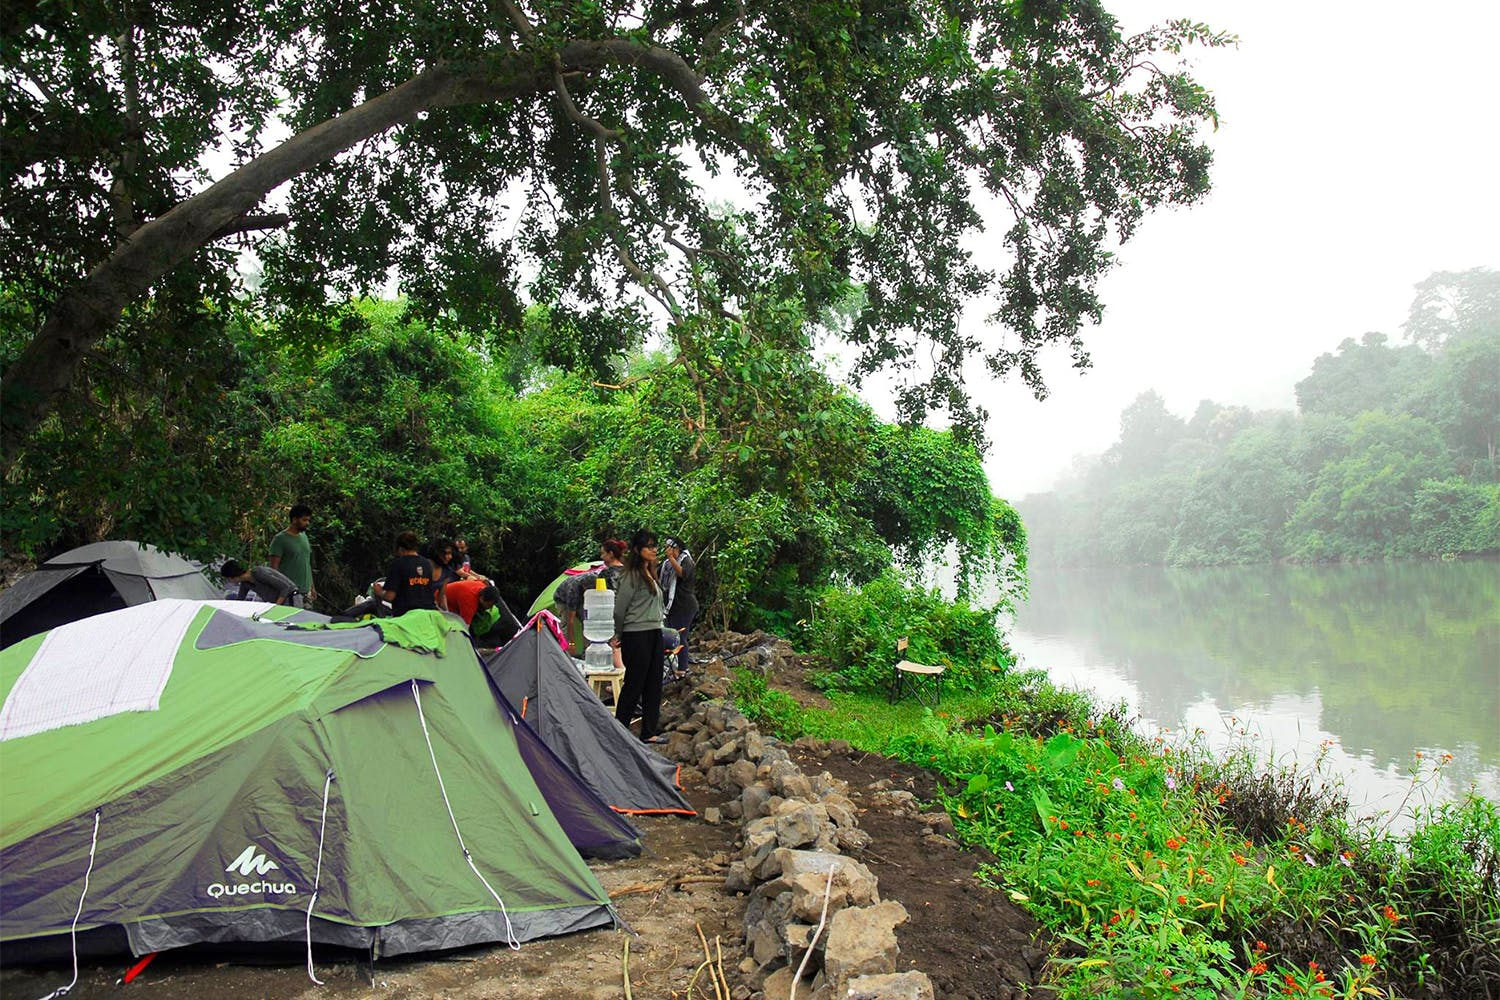 Jungle,Atmospheric phenomenon,Tree,Wilderness,Morning,Biome,Hill station,Rainforest,Tent,River